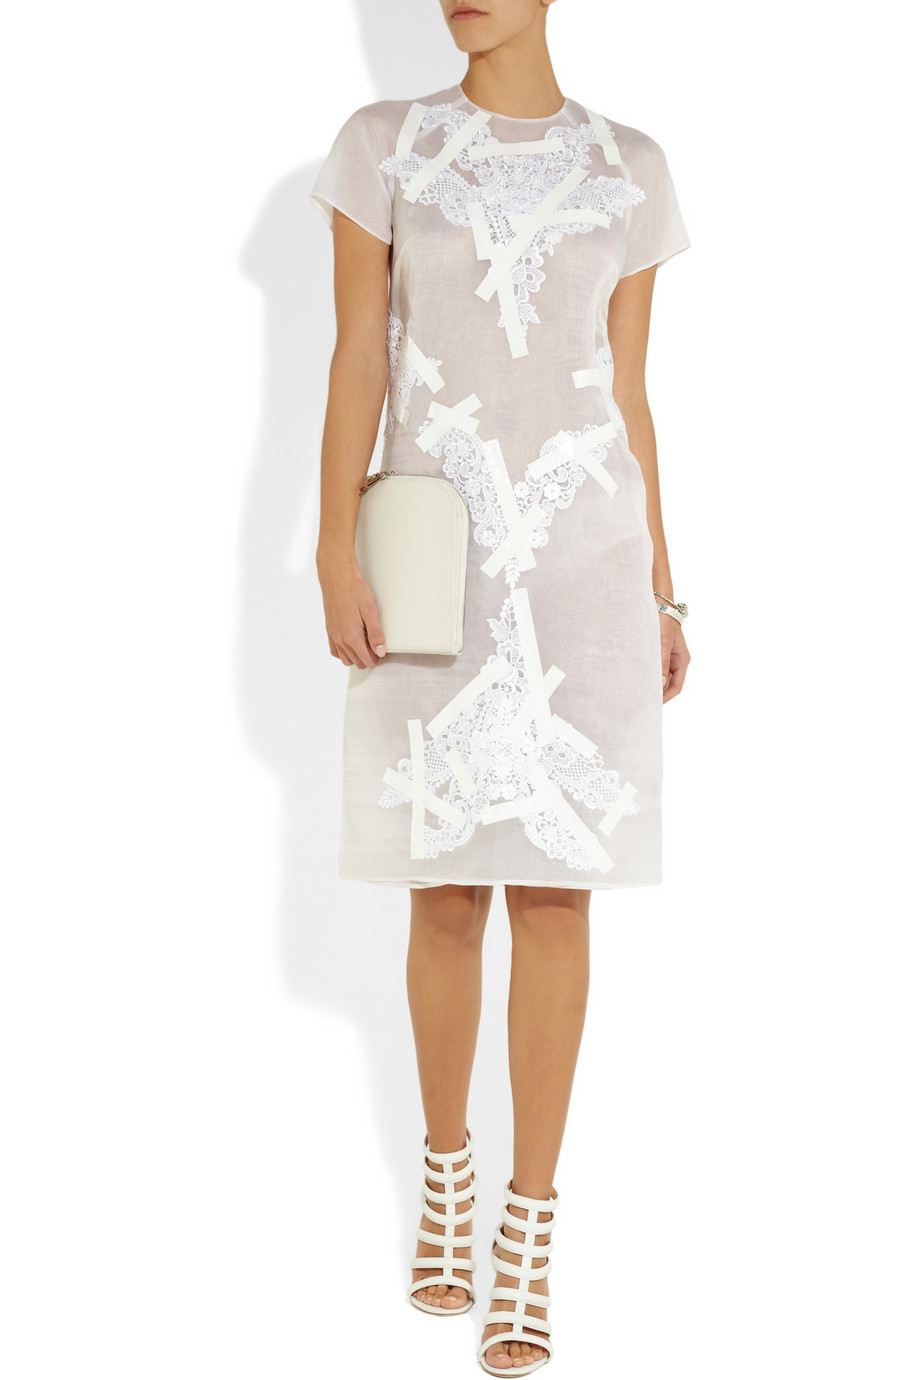 Christopher Kane Dresses Christopher Kane Lace Dress